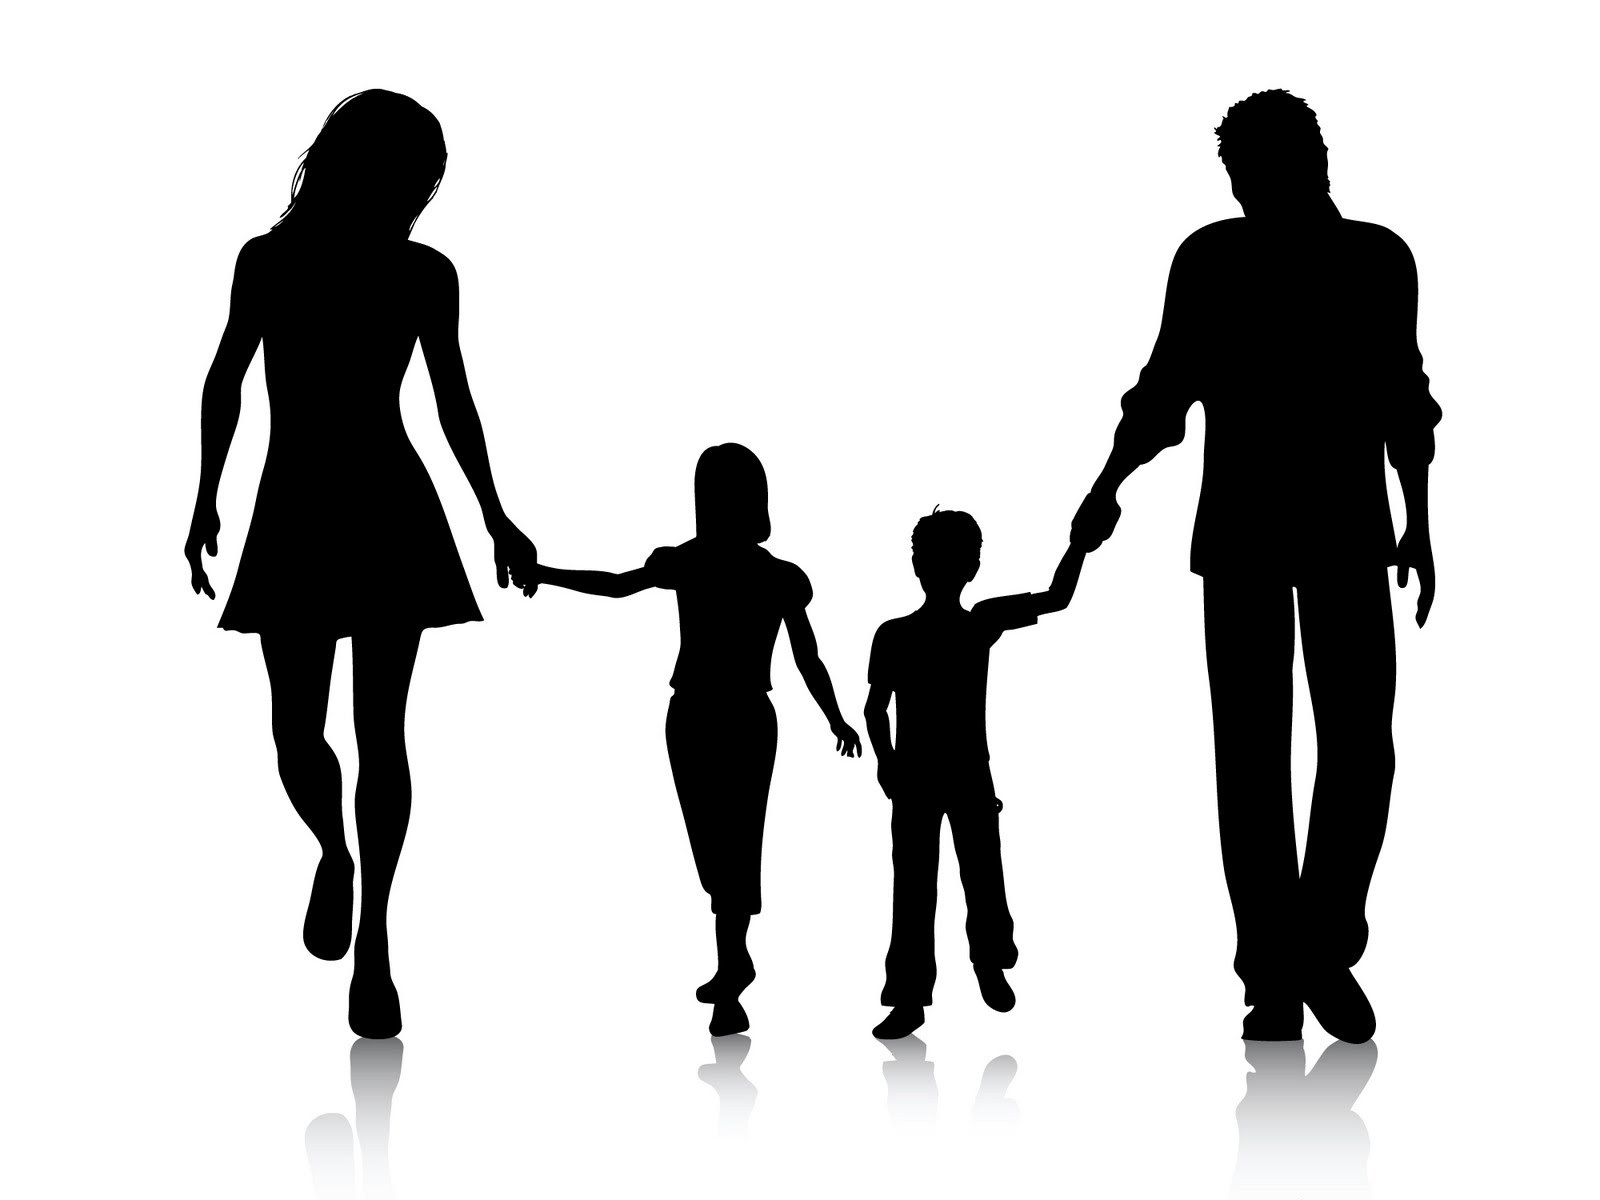 Family clipart 5 people